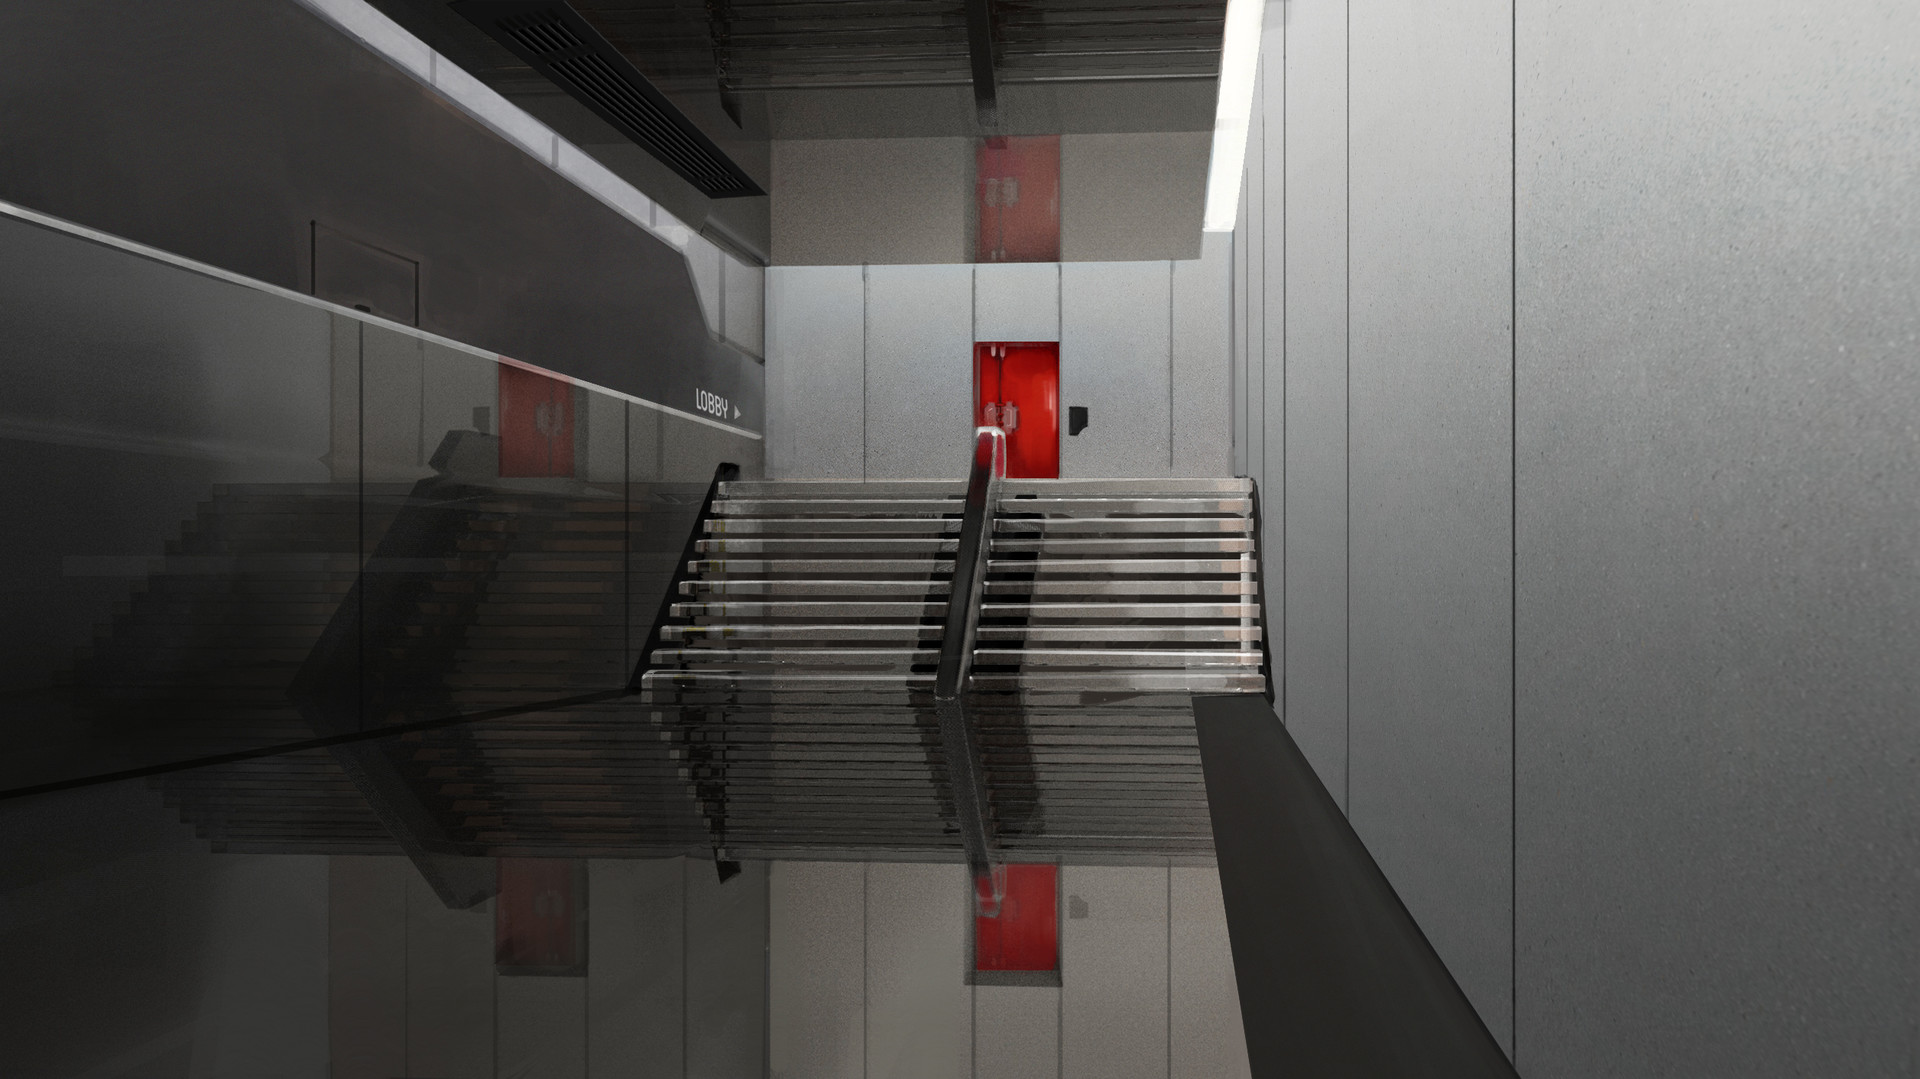 Marina ortega red door corridor marinaortega the forest